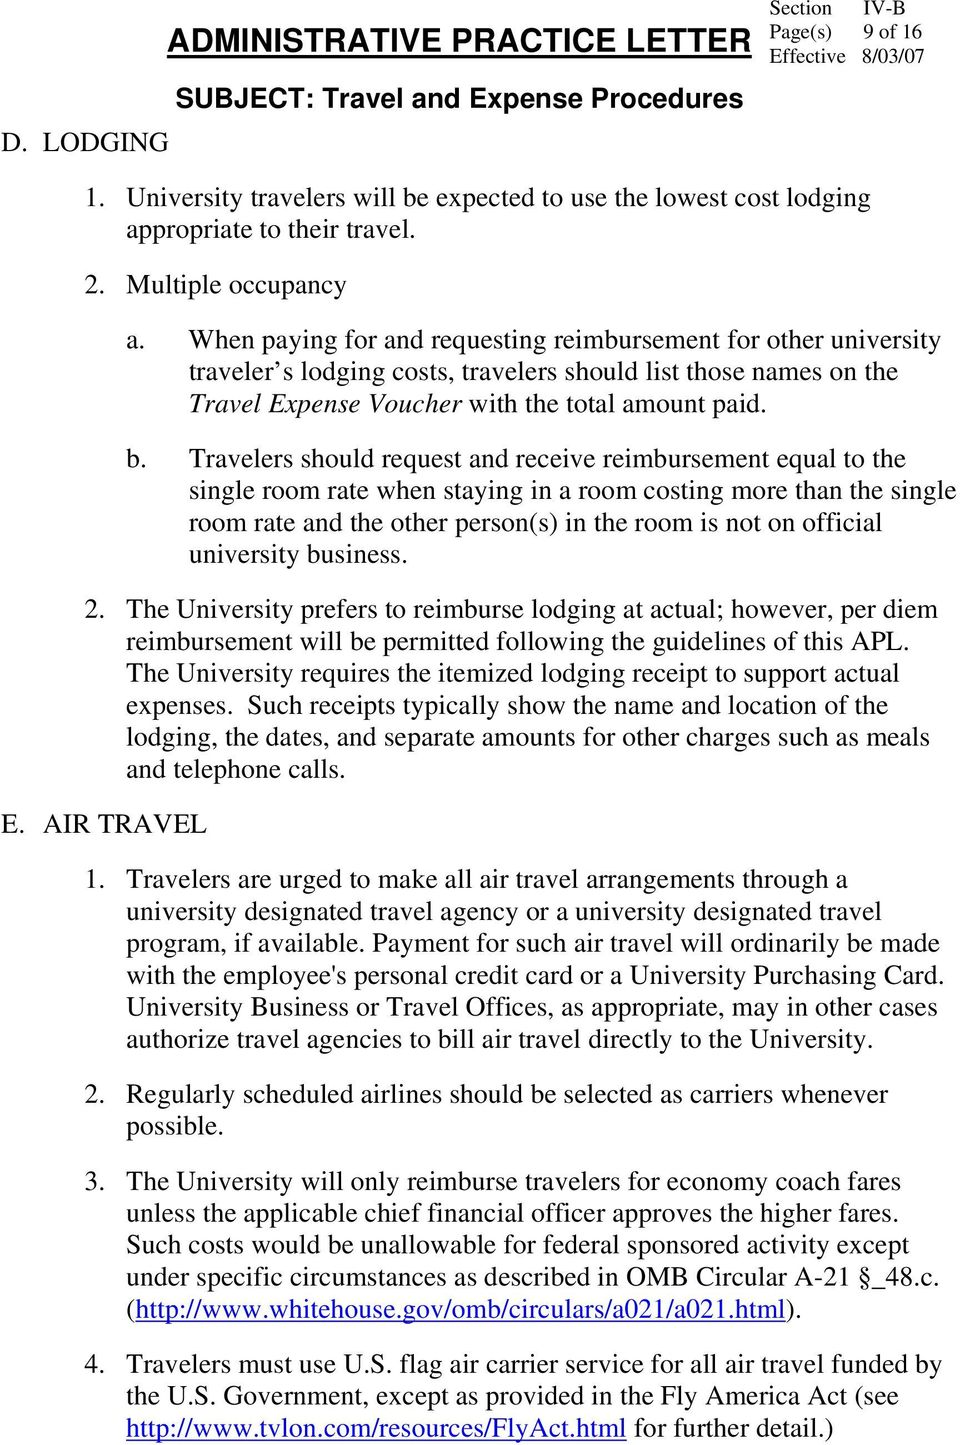 Travelers should request and receive reimbursement equal to the single room rate when staying in a room costing more than the single room rate and the other person(s) in the room is not on official